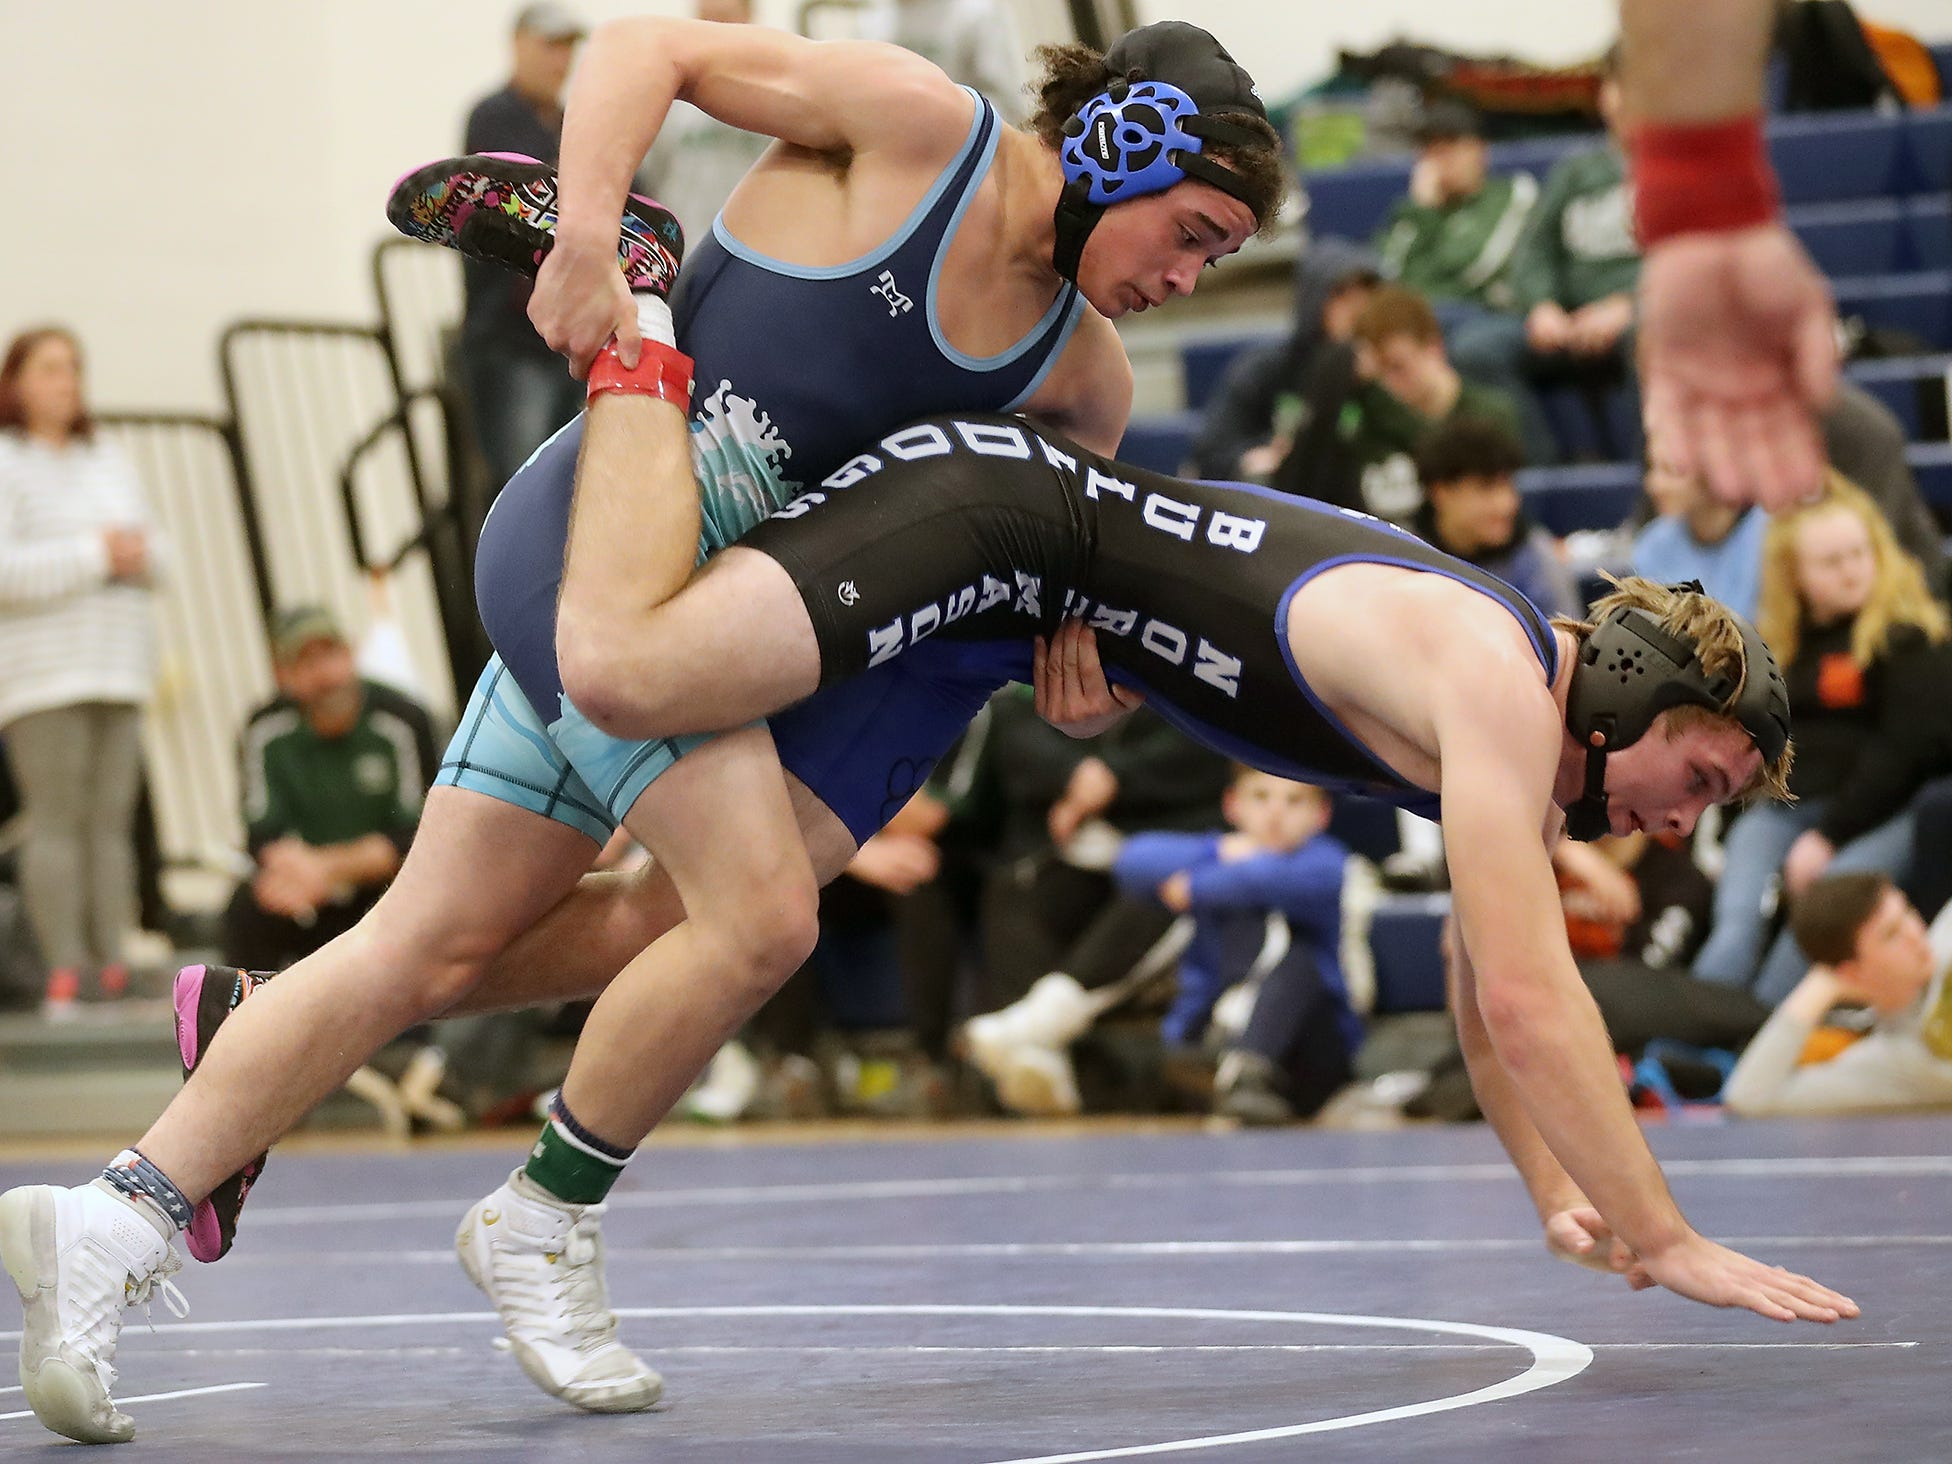 North Mason's Daniel Pulley and Gig Harbor's Trevor Zeitner grapple for the first place finish in the 160-pound weight class at the North Mason Classic in Belfair on Saturday, December 22, 2018.